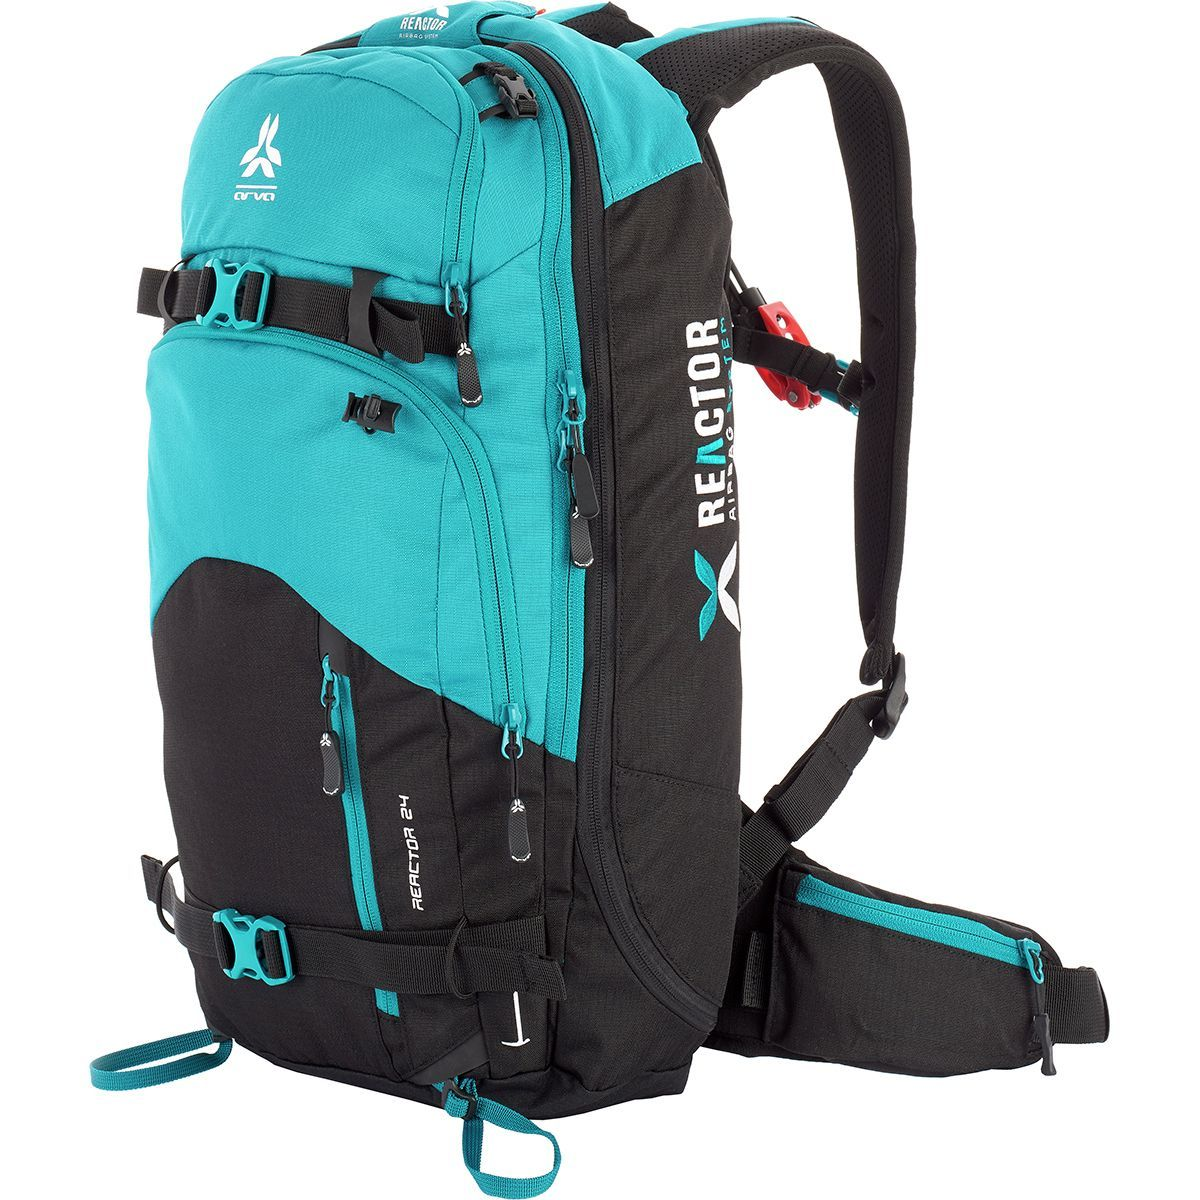 ARVA Reactor 24L Airbag Backpack